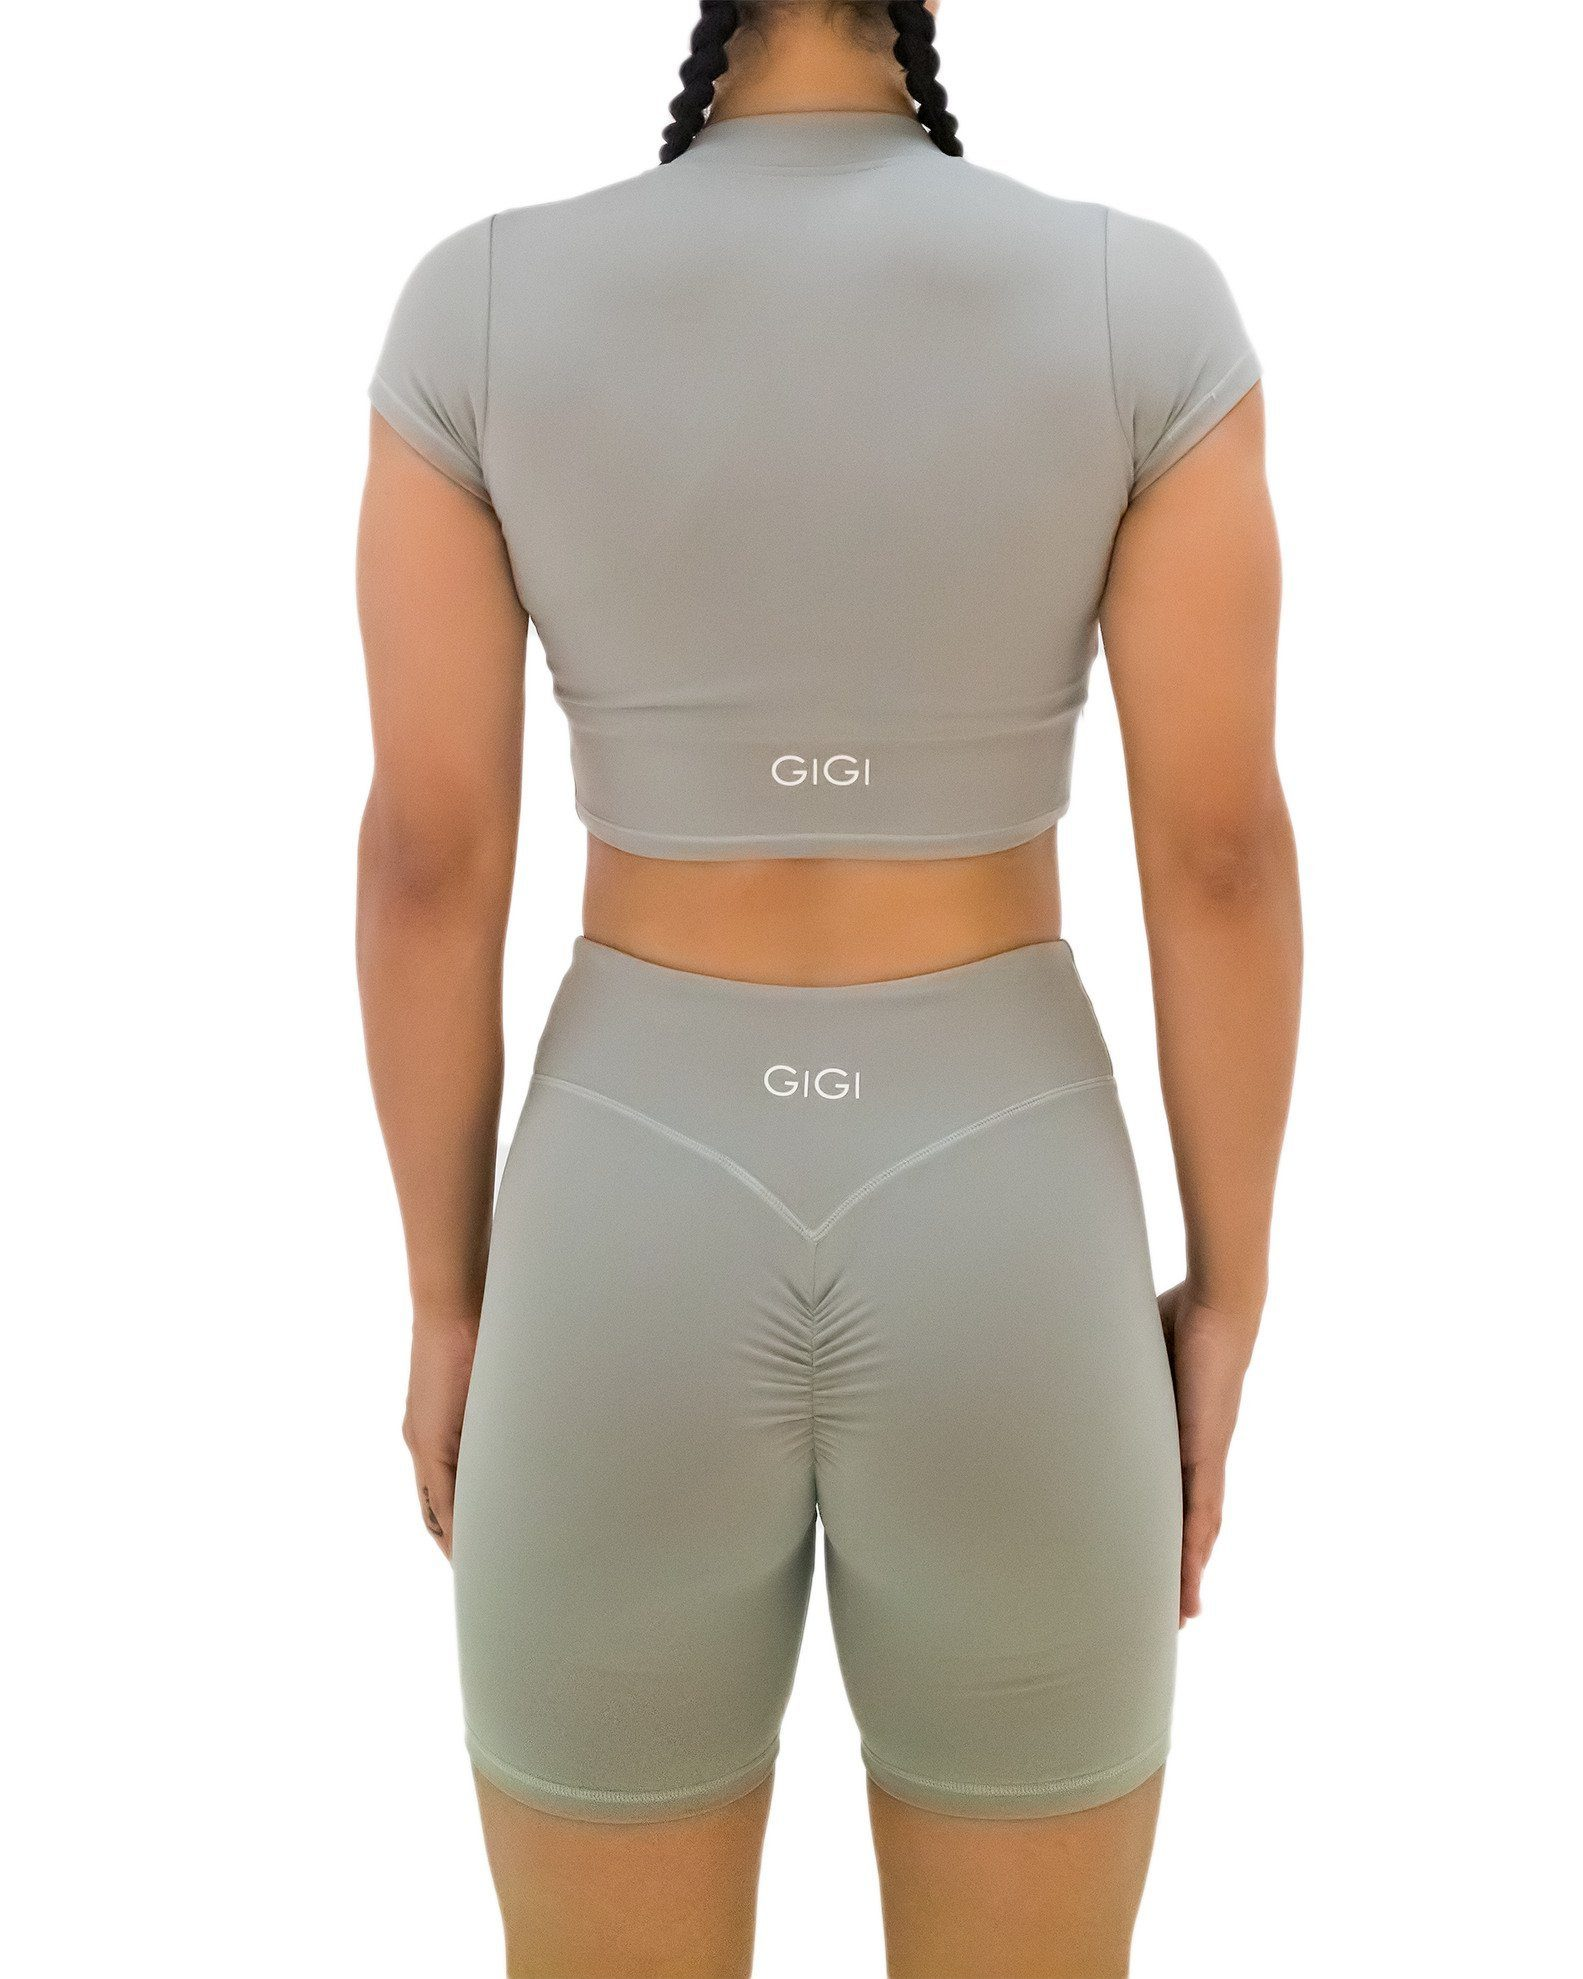 GIGI Lina Bike Shorts - Grey